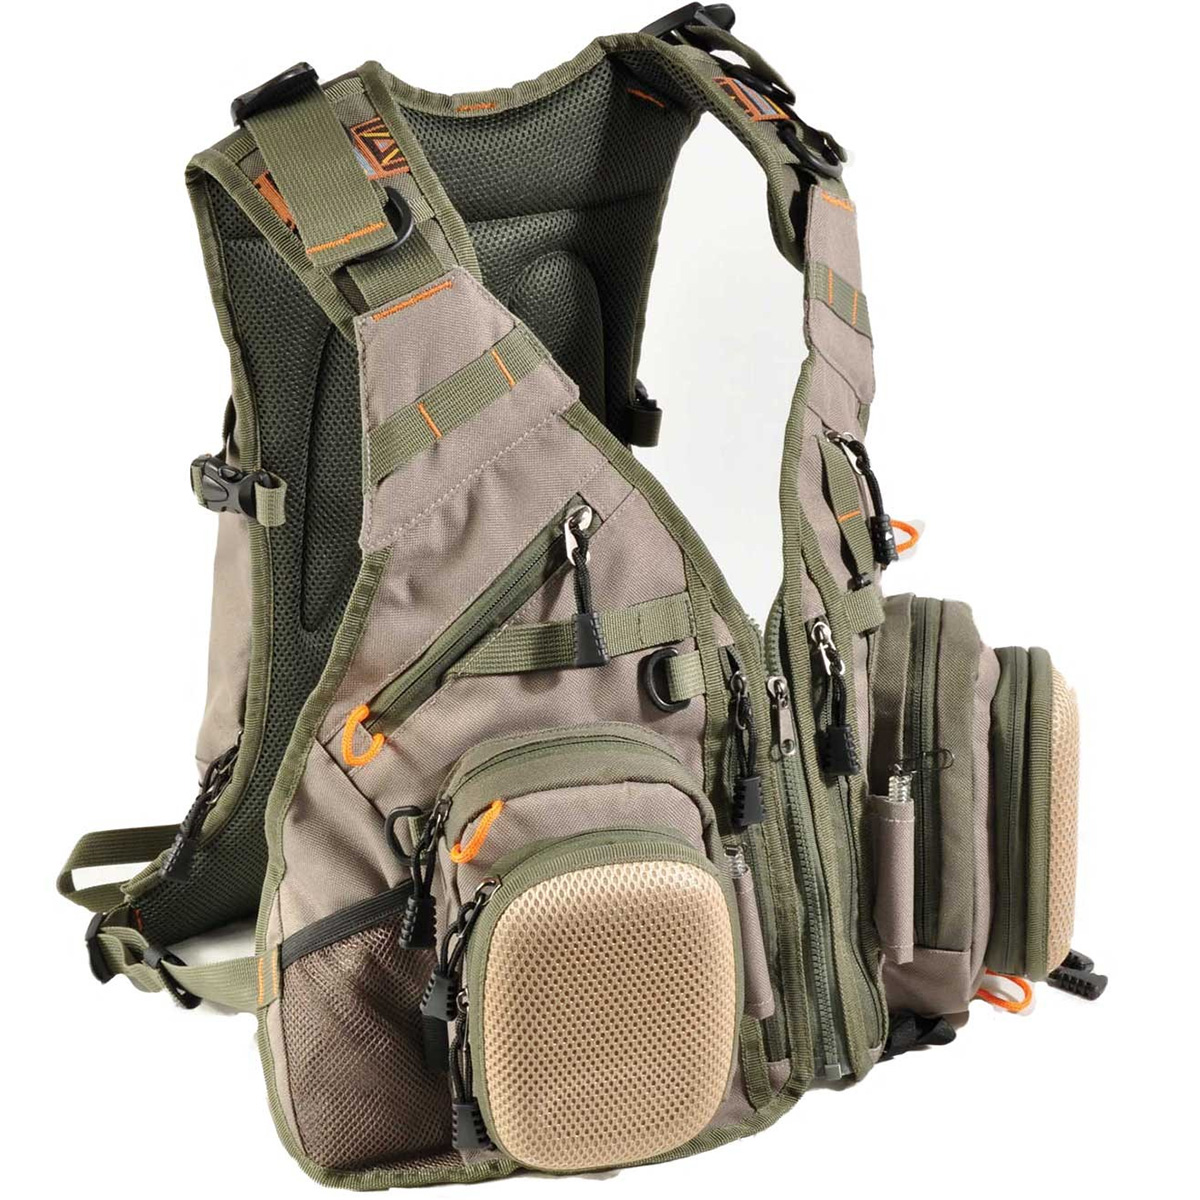 Airflo outlander vest adn 25l backpack fly fishing for Fly fishing backpack